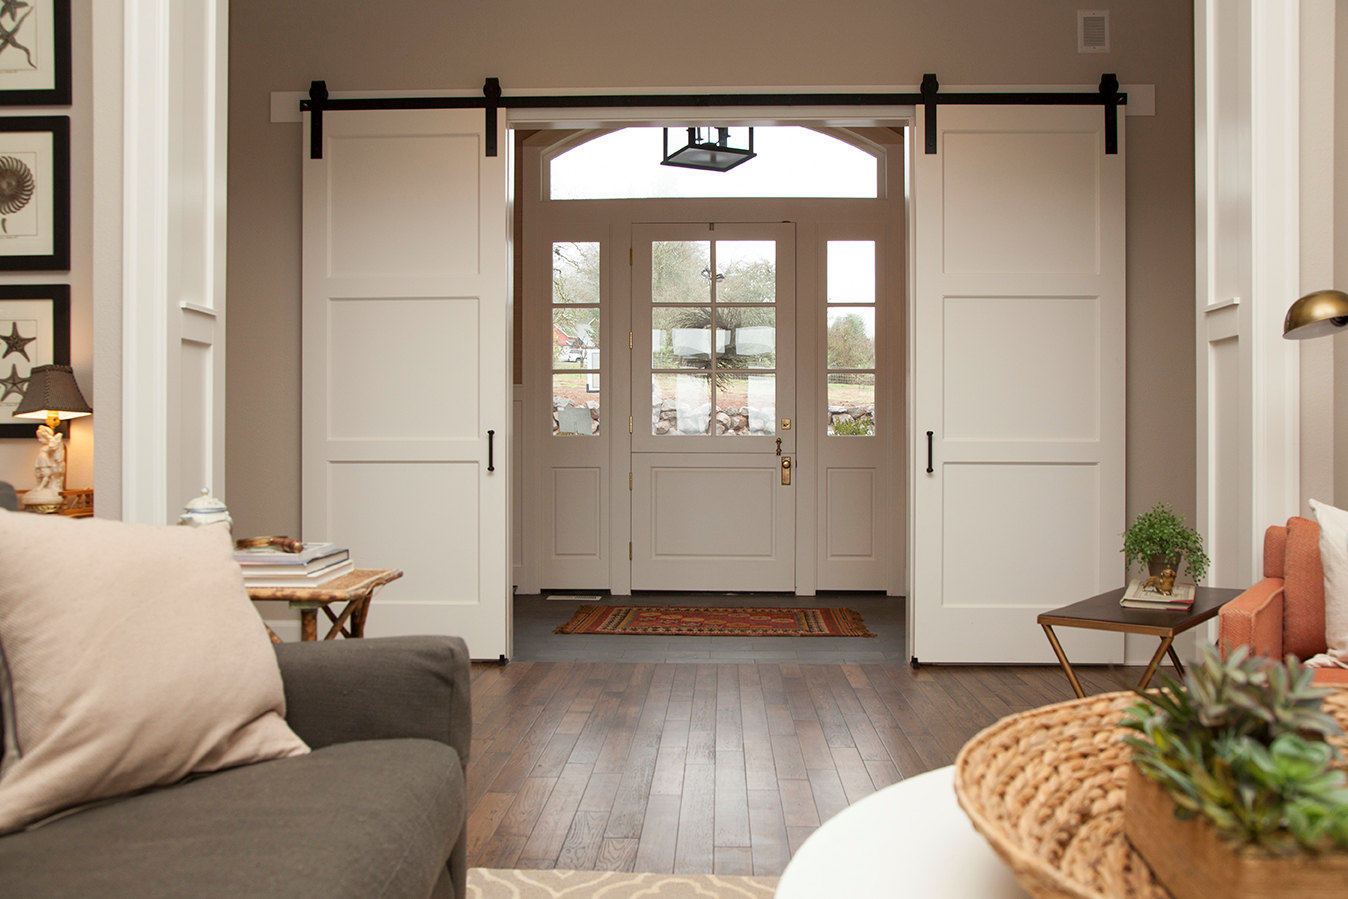 Interior barn door style hardware can be ordered online